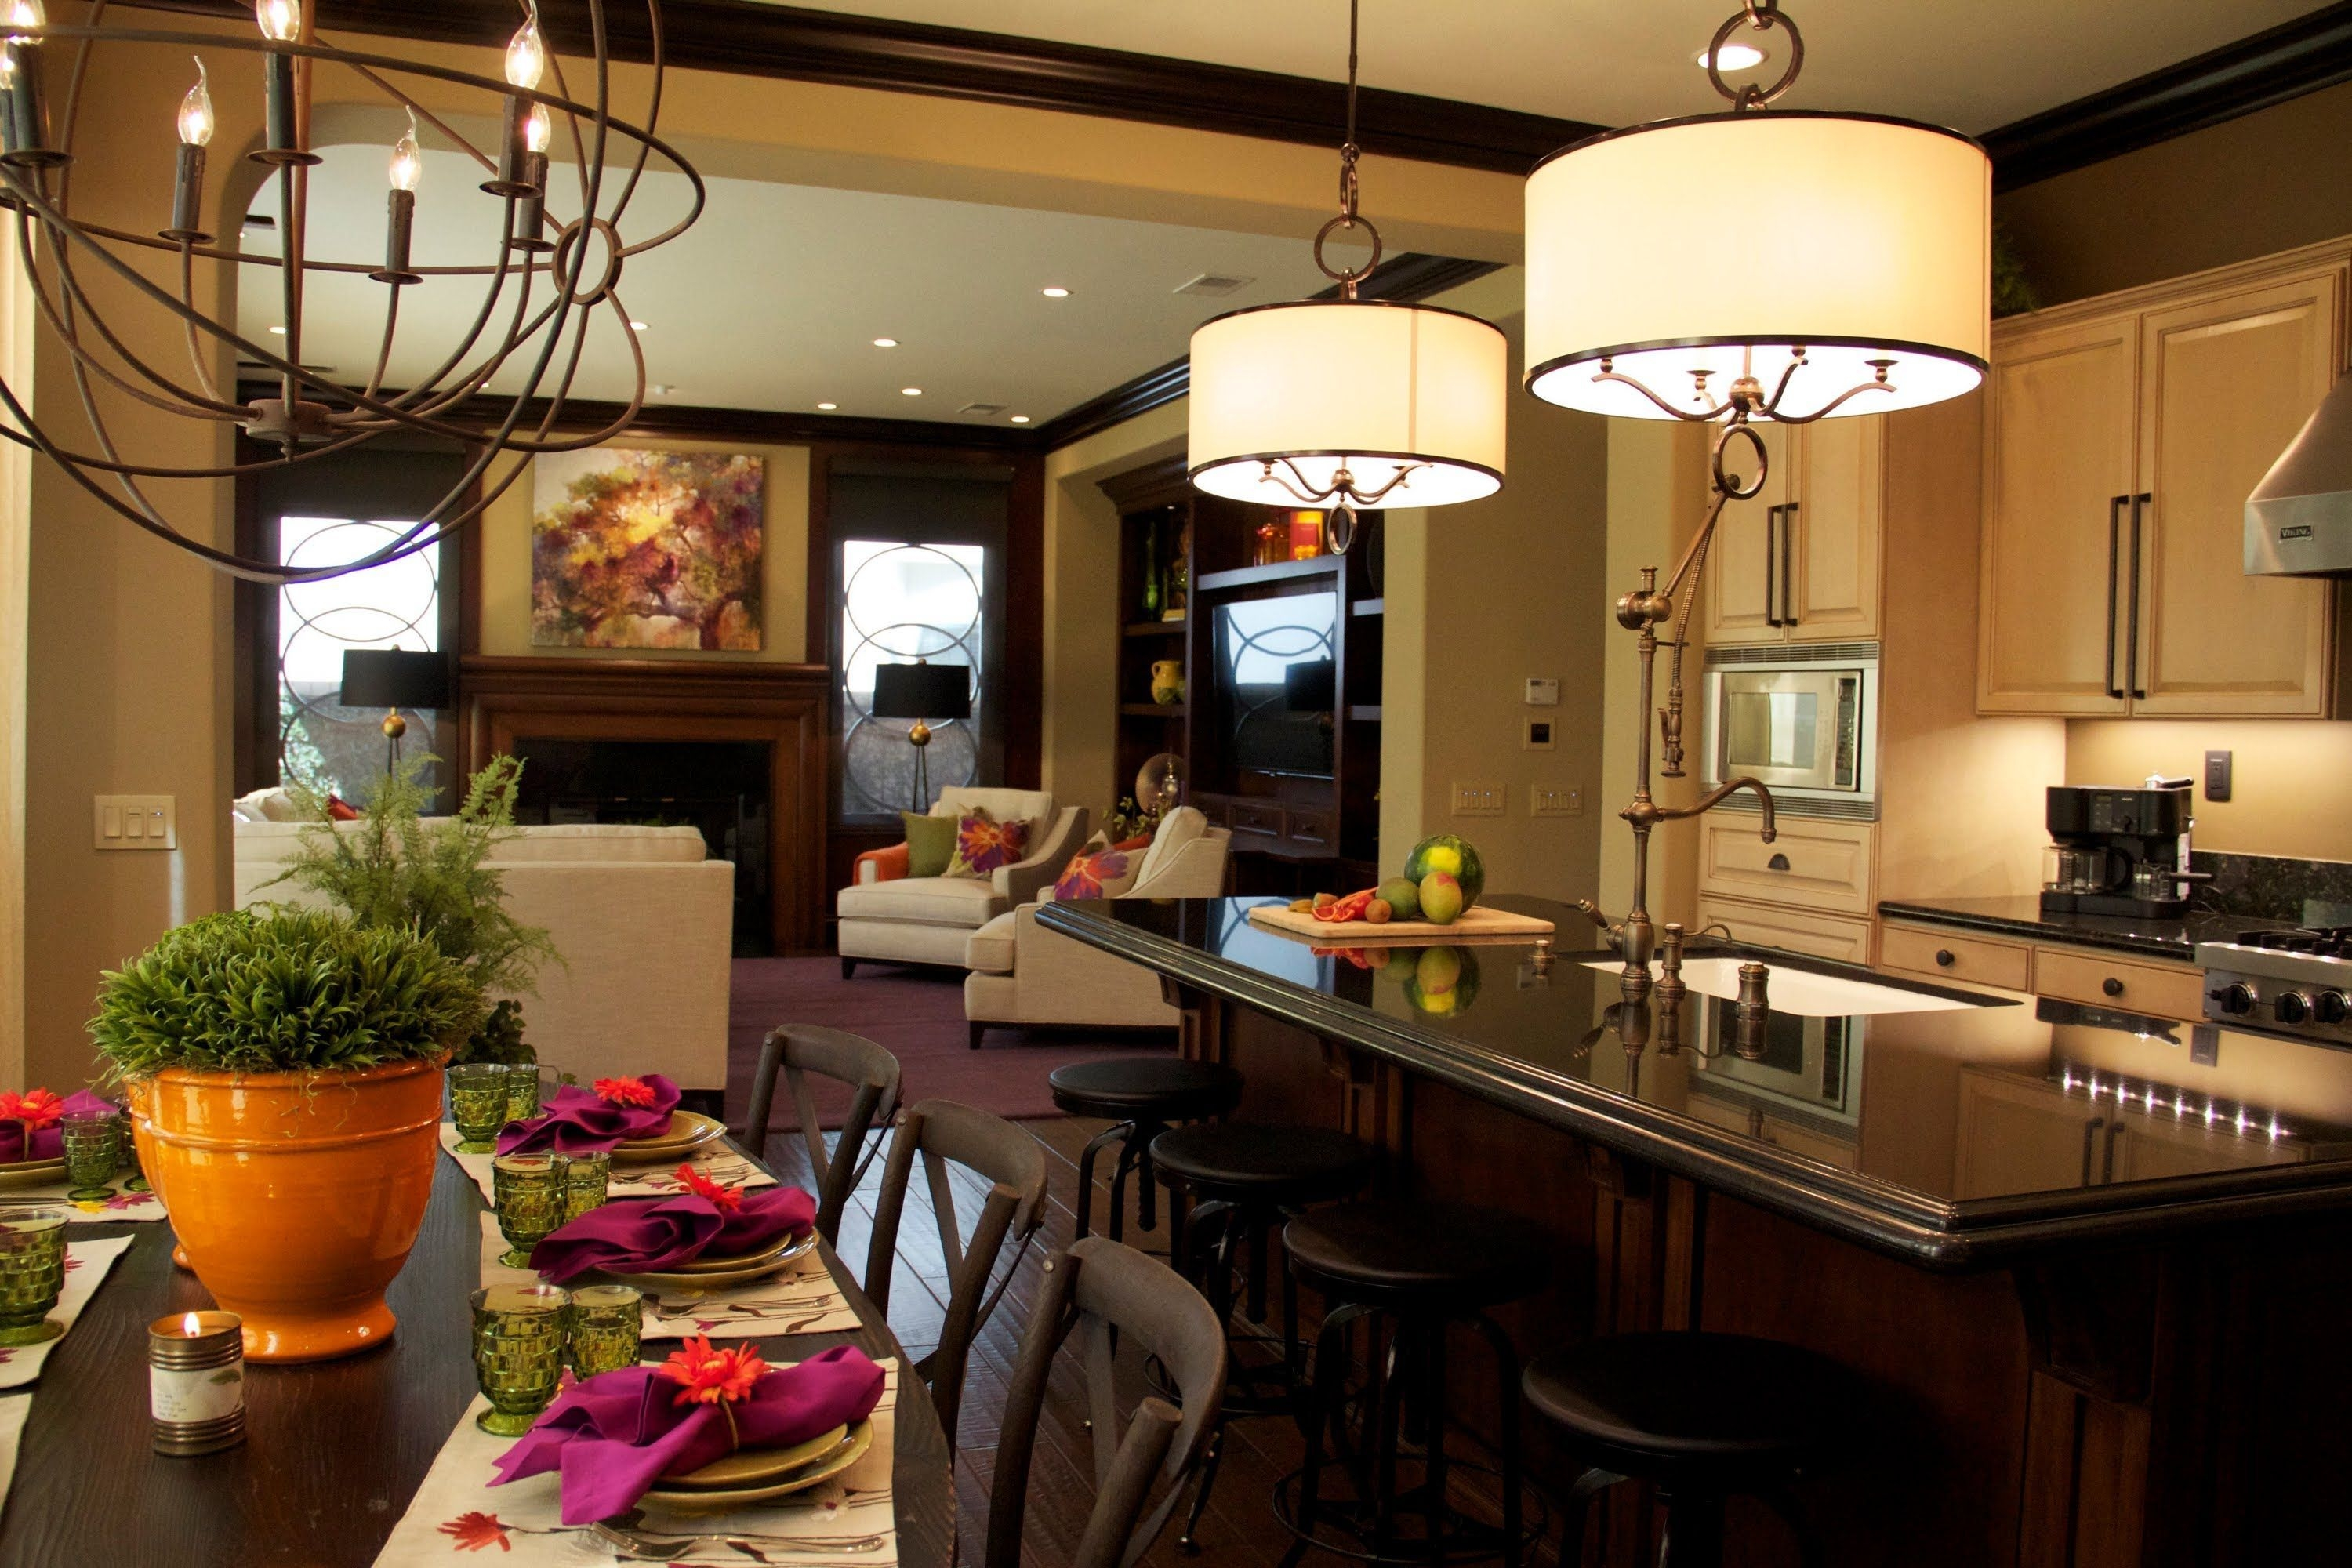 Interior Design Kitchen Family Room Home Revealrobeson Design I Loooove The Colors Of The